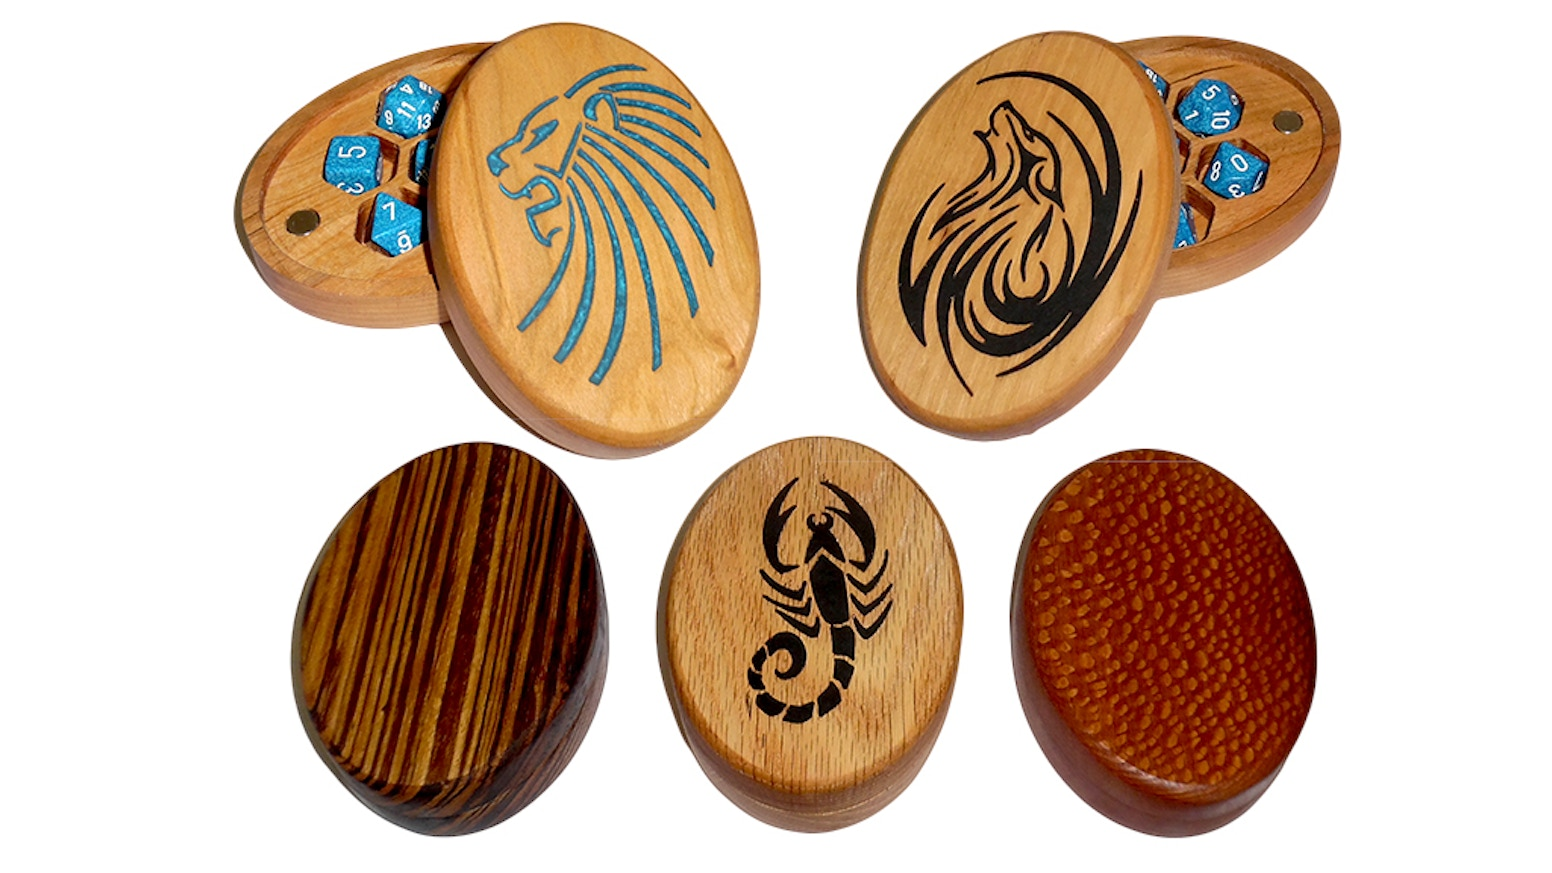 Store polyhedral d20, RPG, D&D, dice, Jewelry  and Gaming accessories,  Hardwood case, crafted with 30 years of woodworking experience.